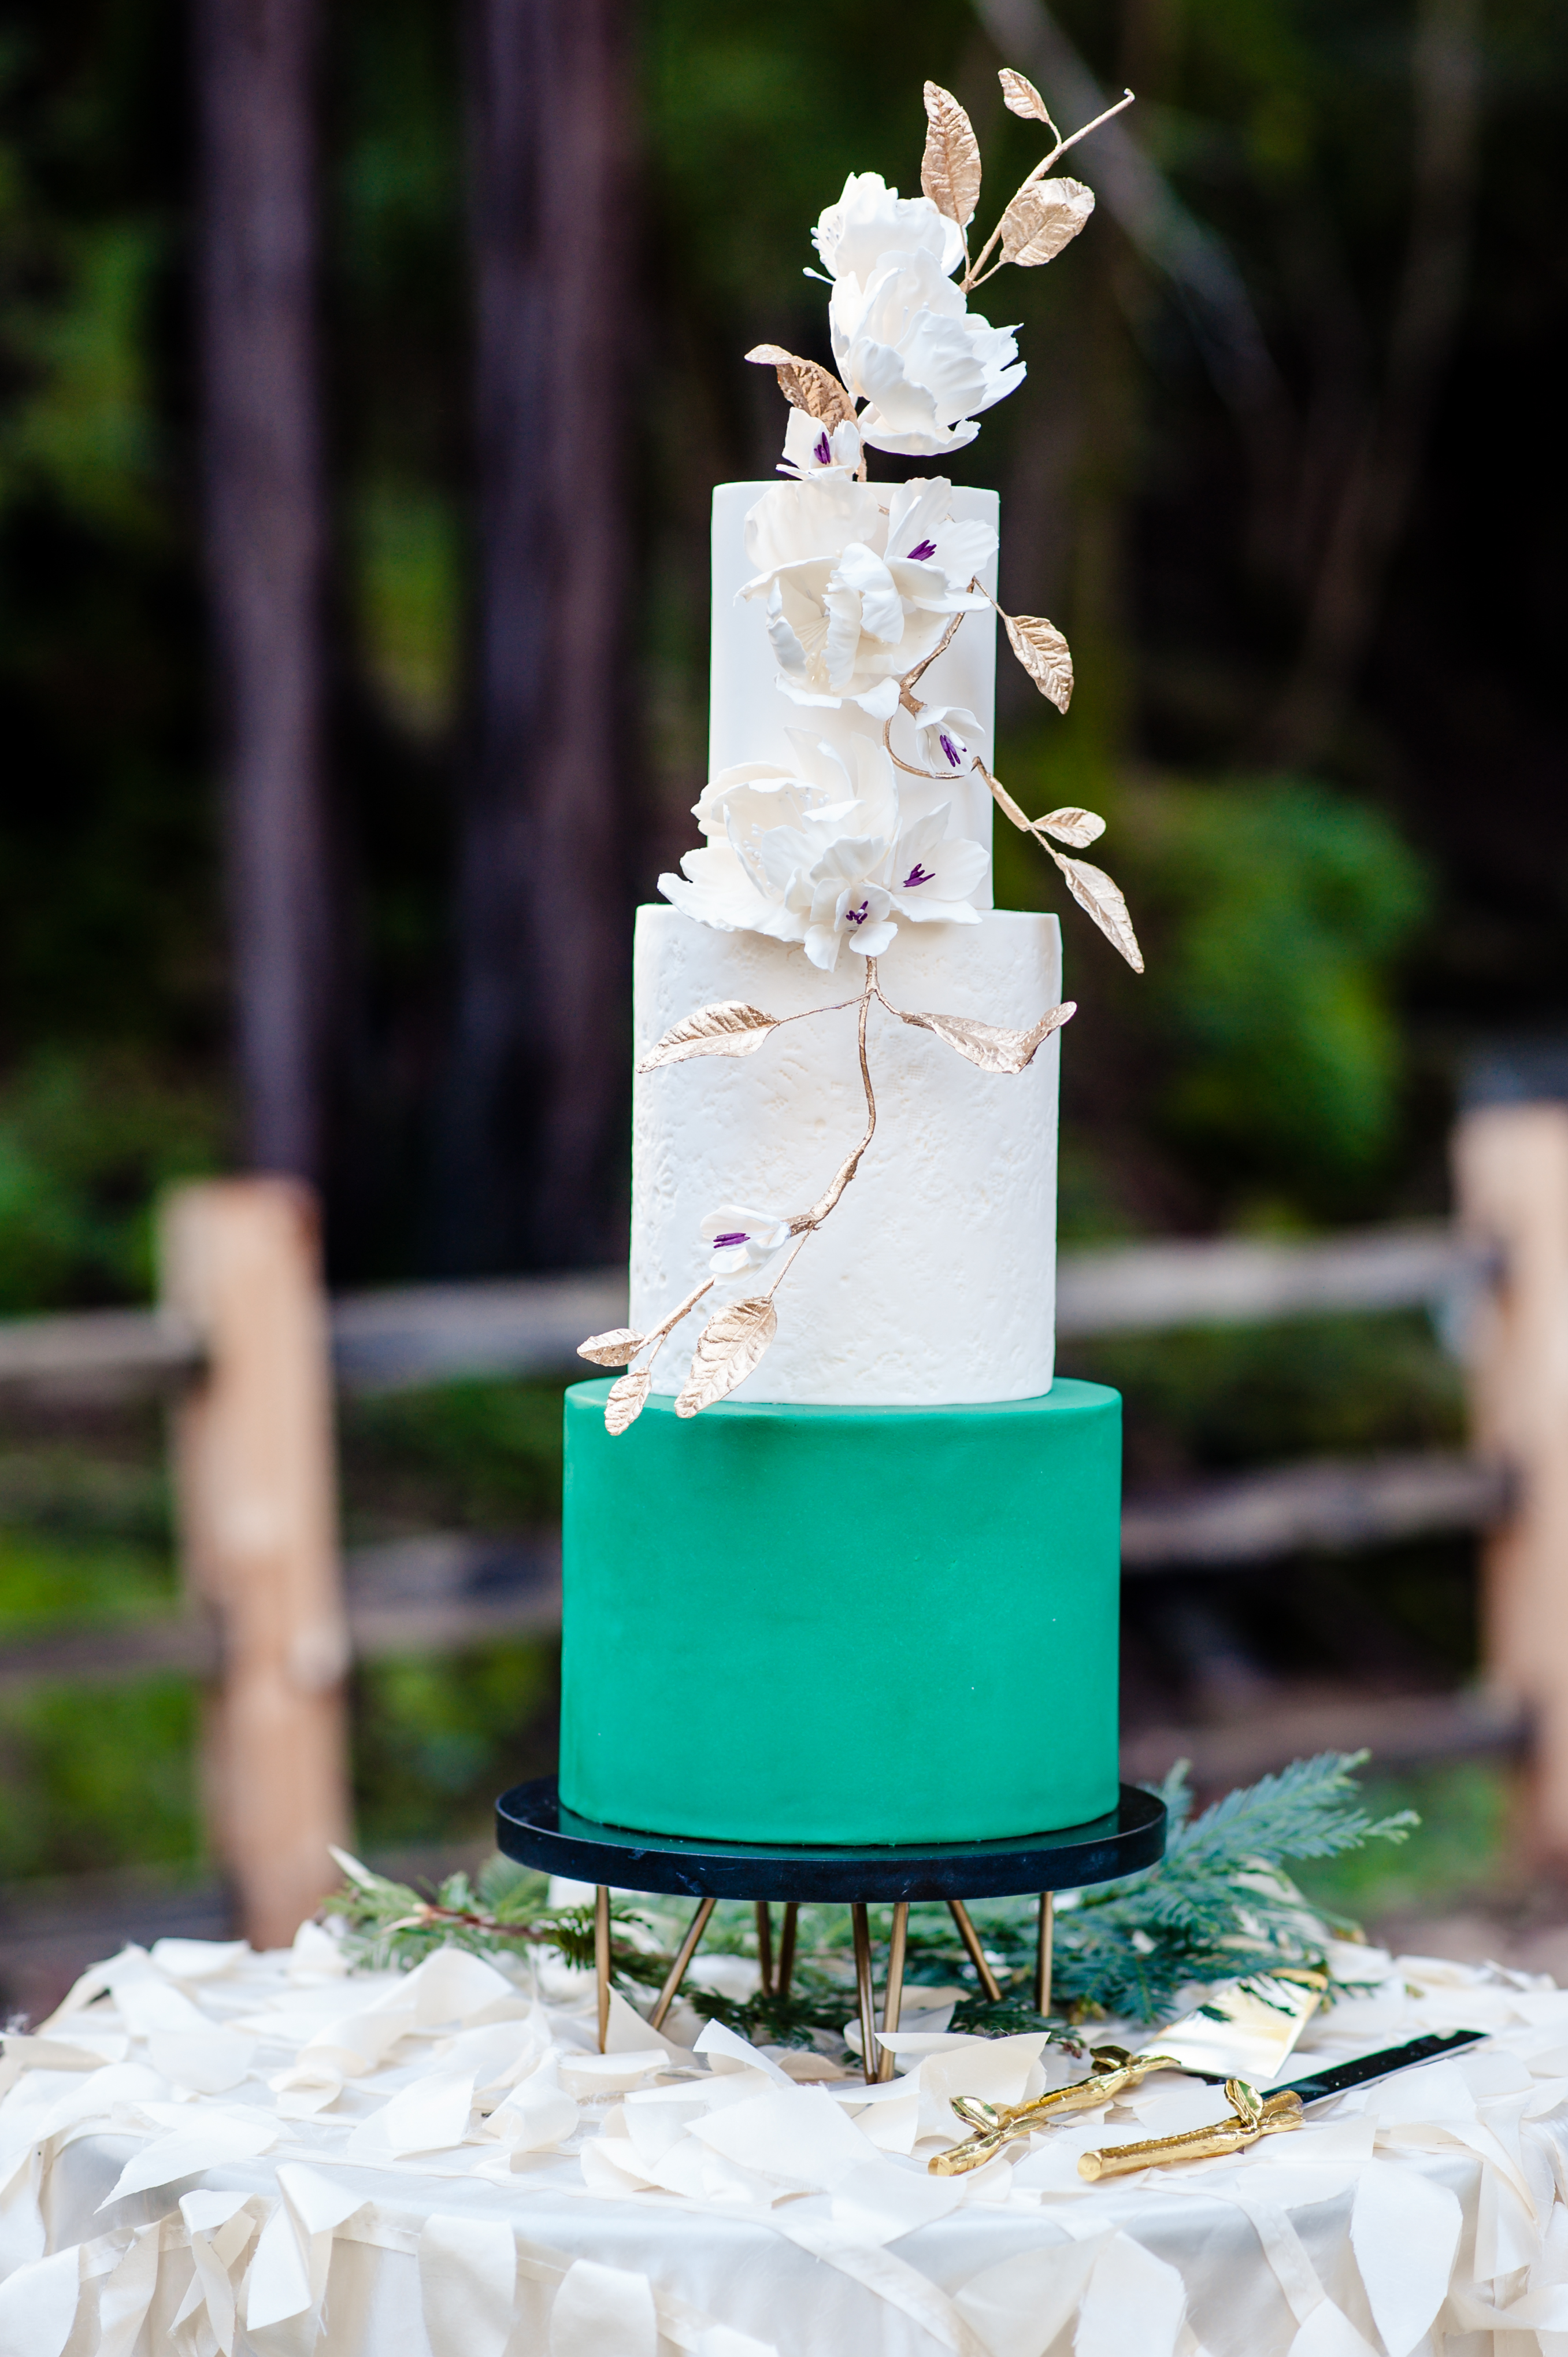 Gilroy Bay Cake Design in Morgan Hill Wedding 1